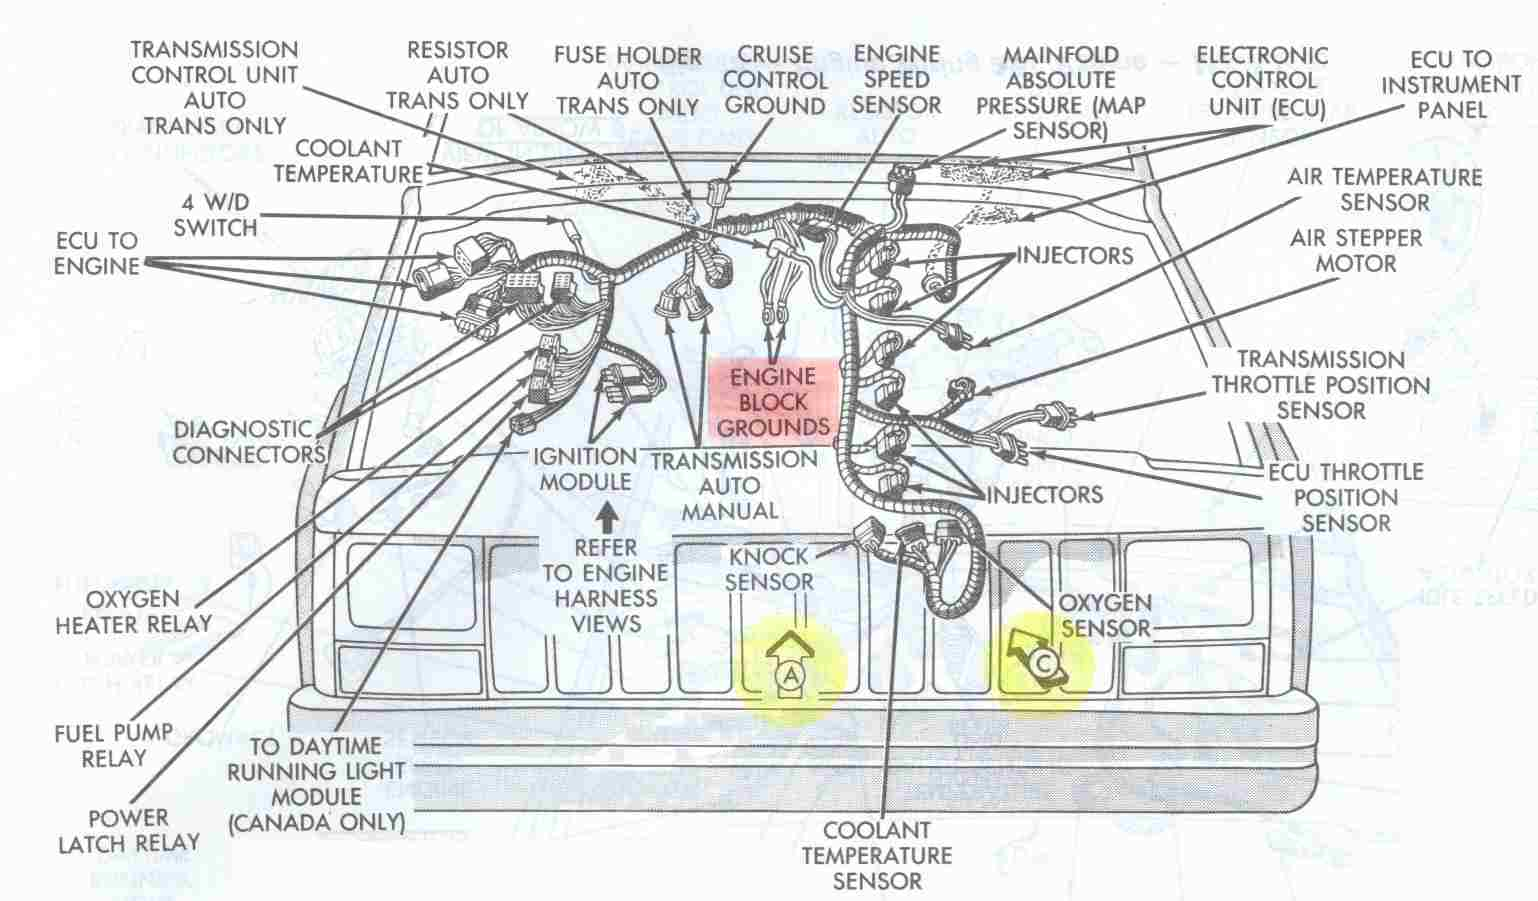 Electrical_Engine_Ground_Points_Overview jeep cherokee electrical diagnosing erratic behavior of engine Wiring Harness Diagram at nearapp.co